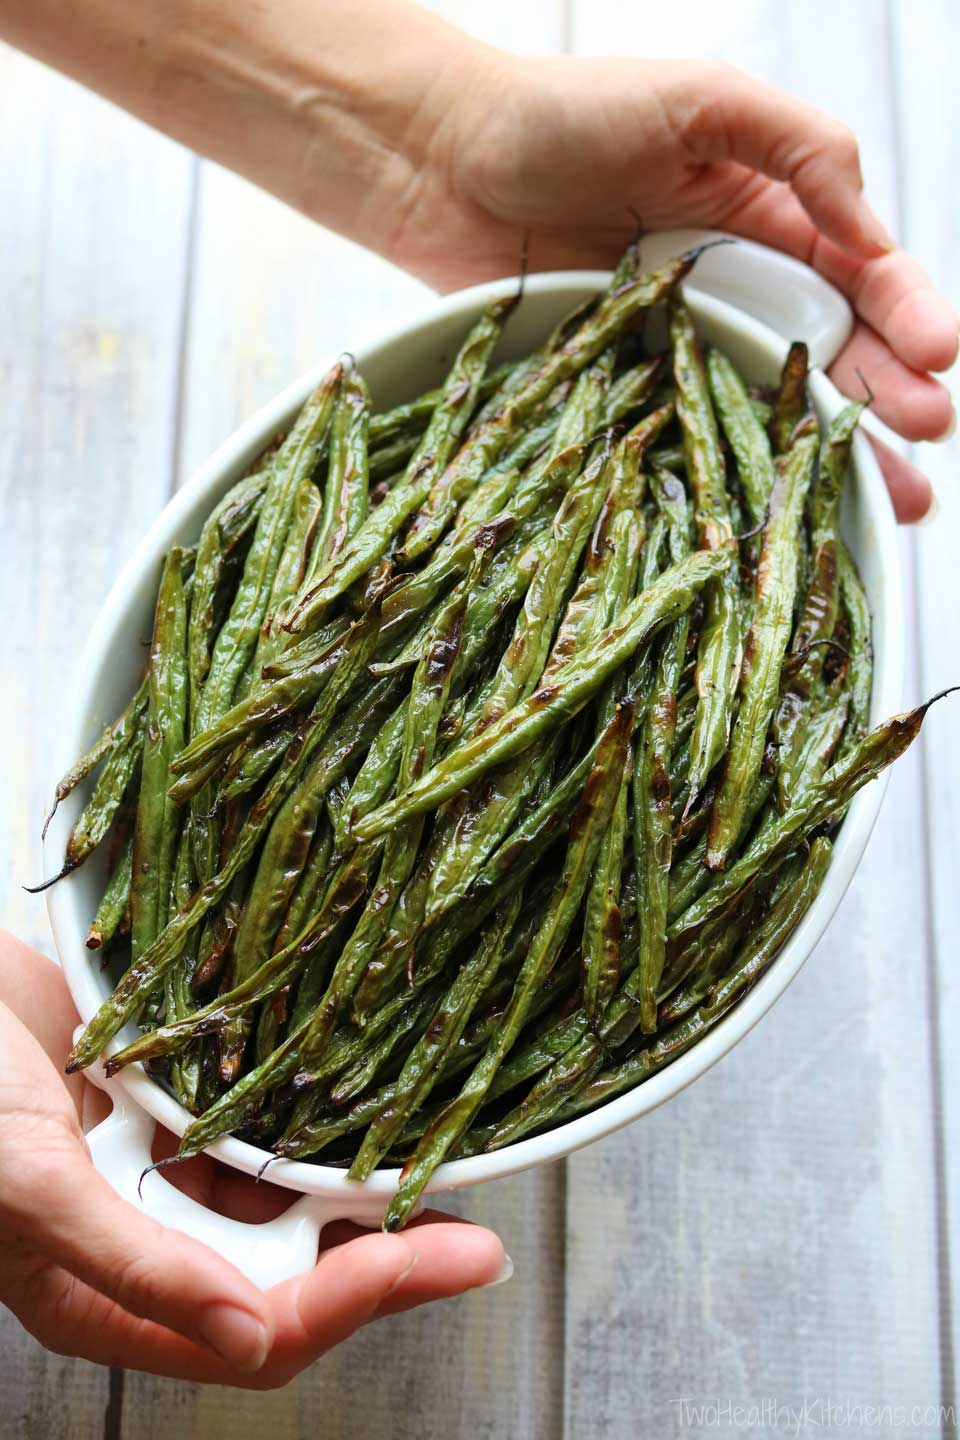 For an easy Thanksgiving side dish that's a truly fresh spin on classic green bean casserole: just serve up super-easy roasted green beans! It doesn't have to be complicated to be delicious!